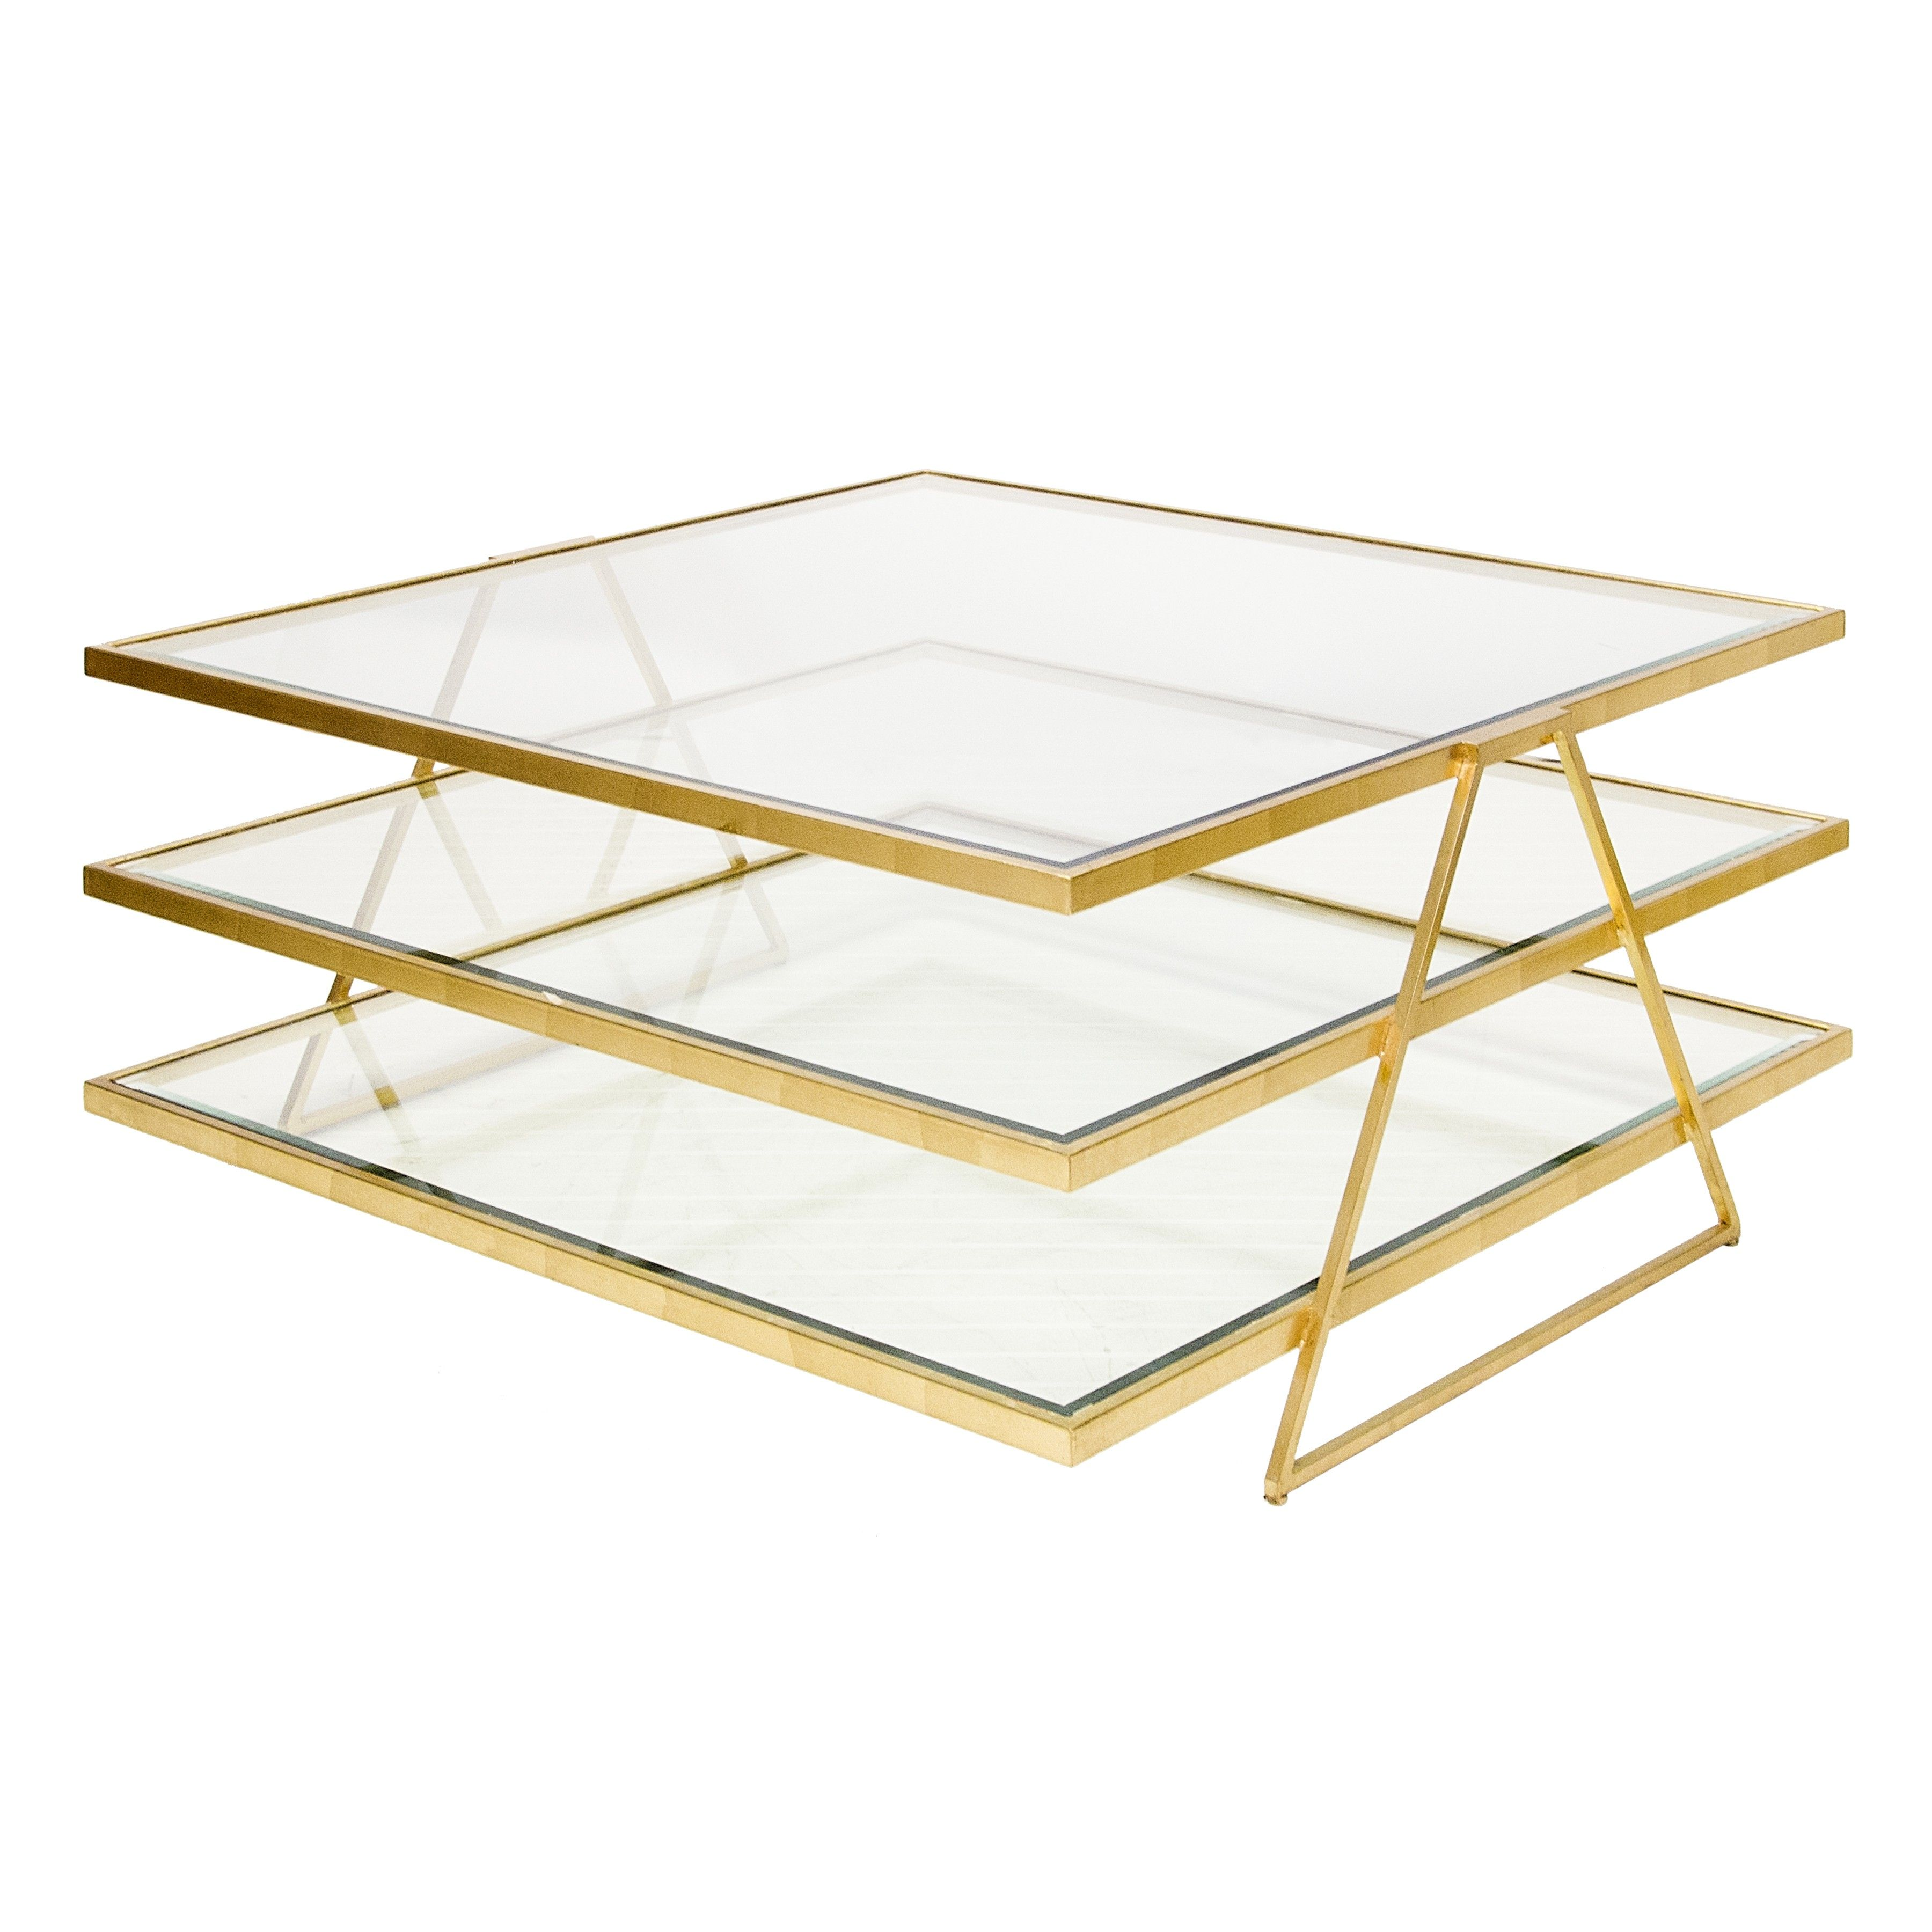 3 Tier Gold Leafed Coffee Table Coffee Table Square Coffee Table Gold Coffee Table